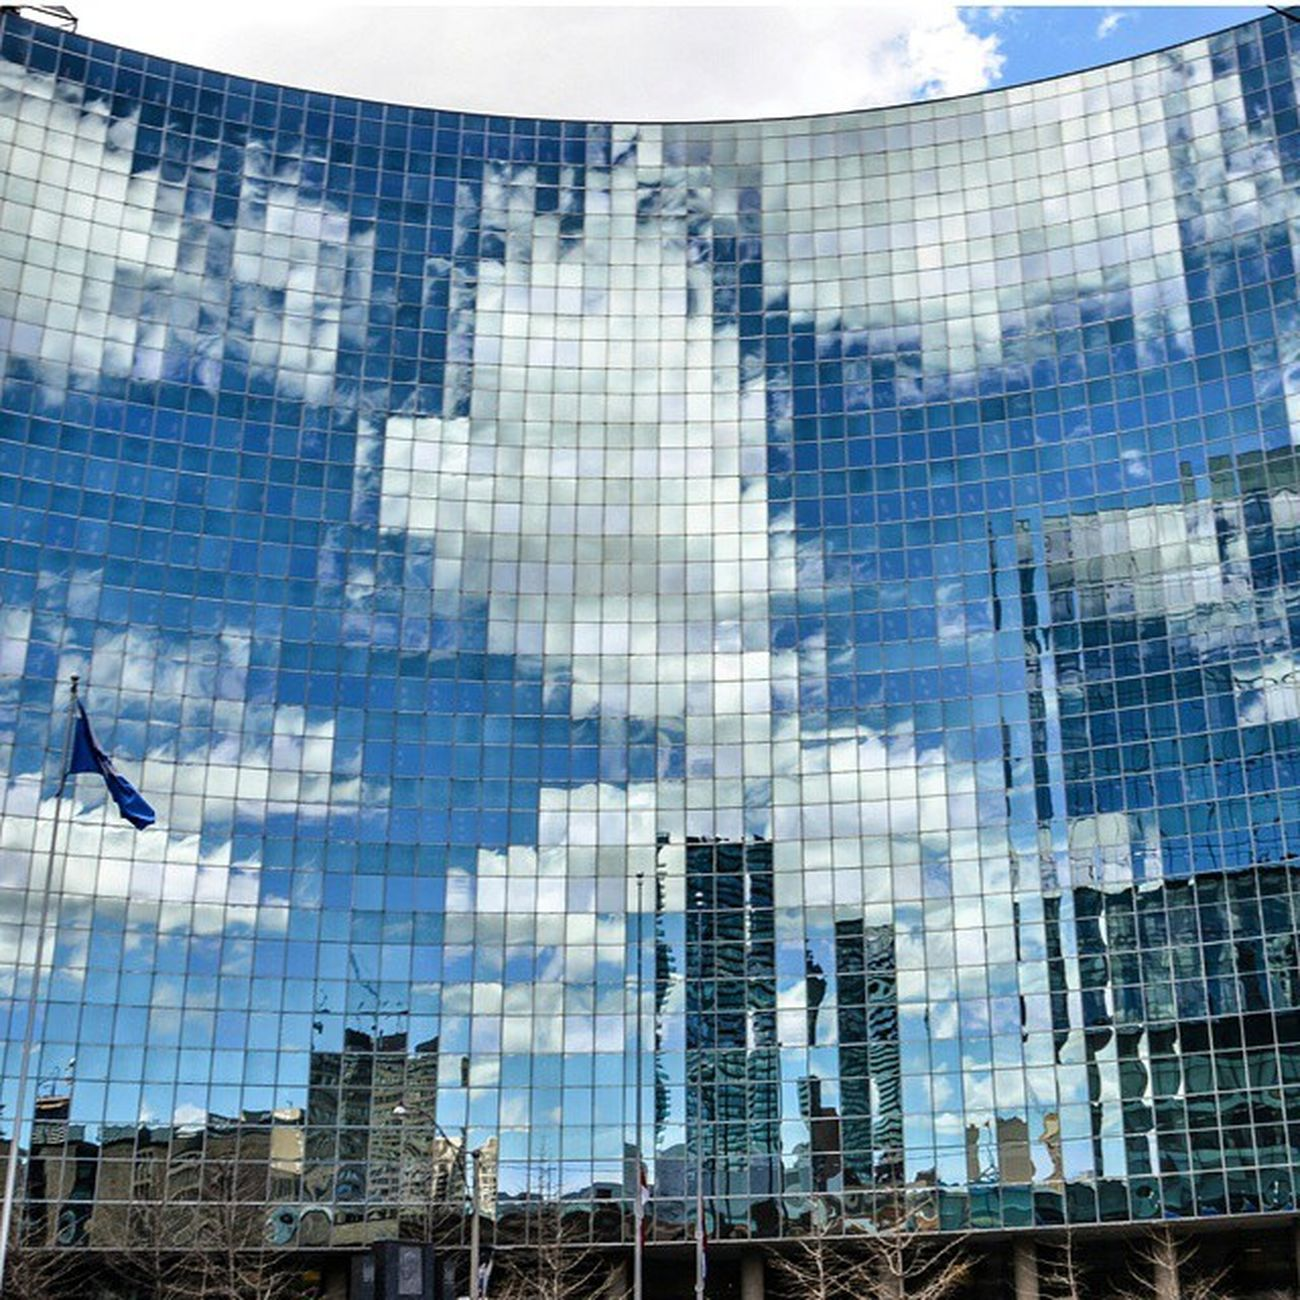 What a beautiful day. Reflections Glass Bluesky Clouds Cityscape Walking Outforawalk Sunny Spring Getoutside OutsideIsFree Photographer Photography Nikonphotography Nikon D7000 Toronto Ontario Canada Nofilter Digitalphotography Lovetocreatepictures Lovetotakepictures Rrhurstphotography Latowphotographersguild